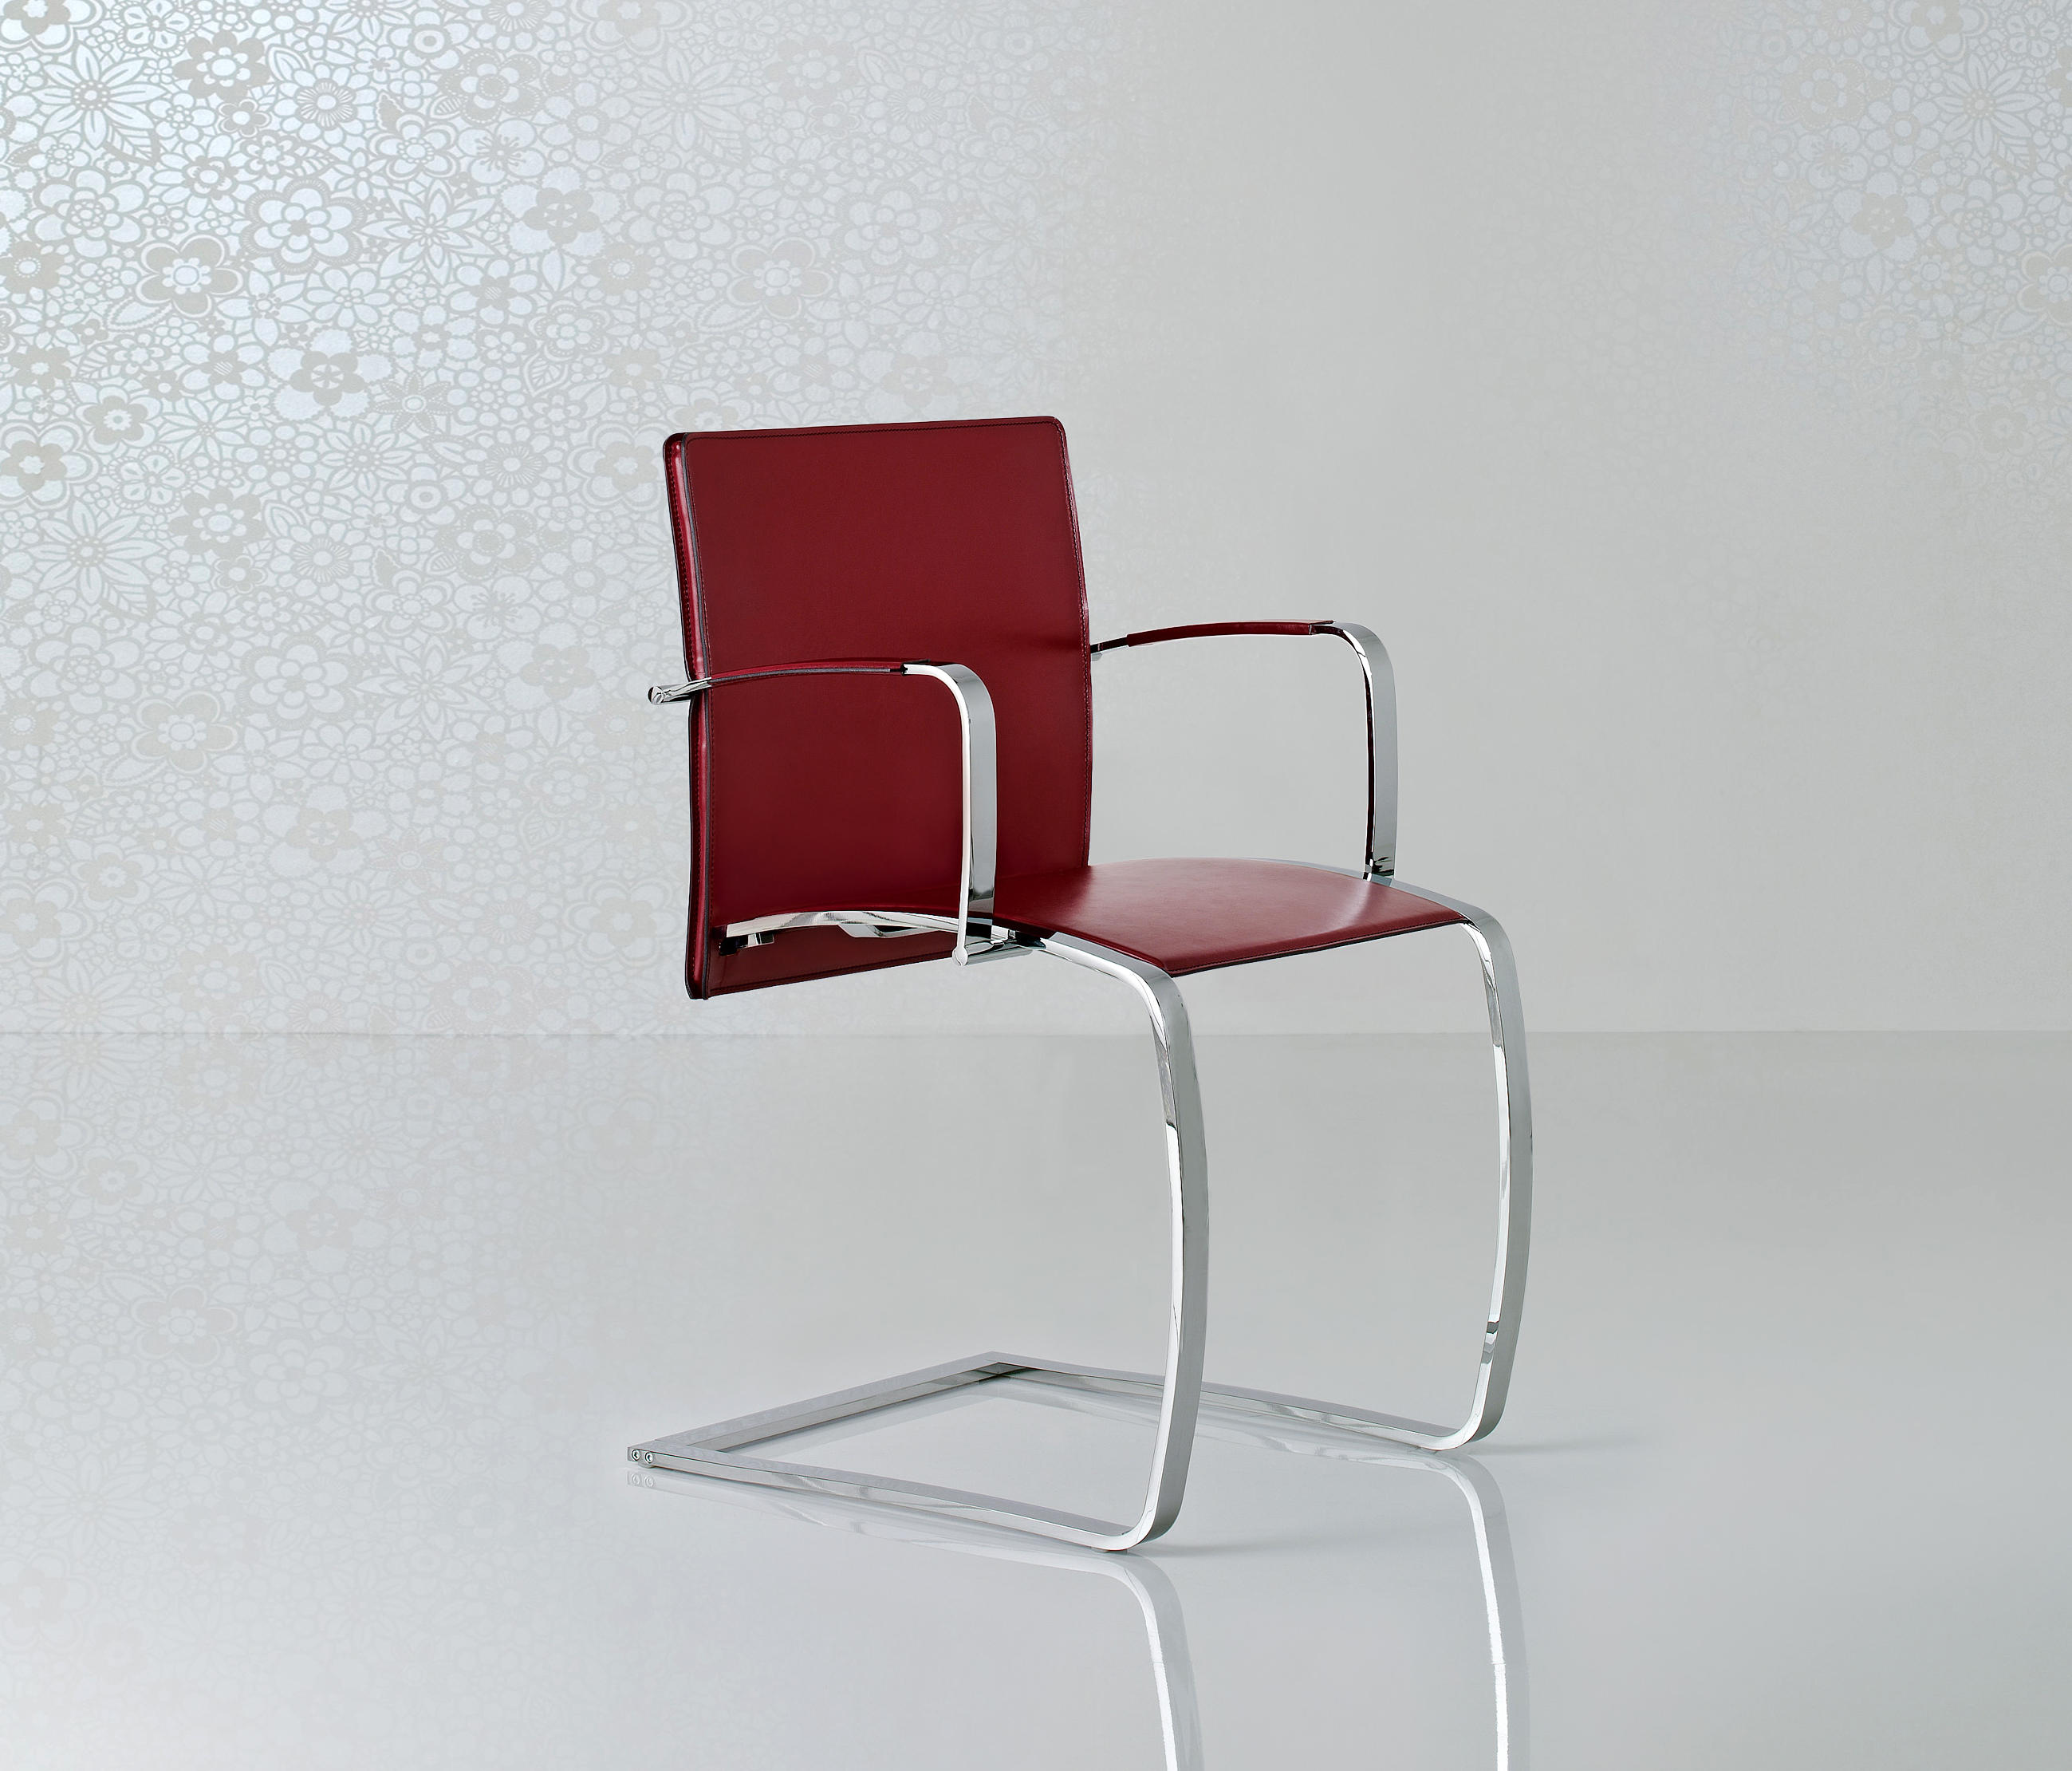 Exceptionnel Zen Chair By Enrico Pellizzoni | Chairs ...